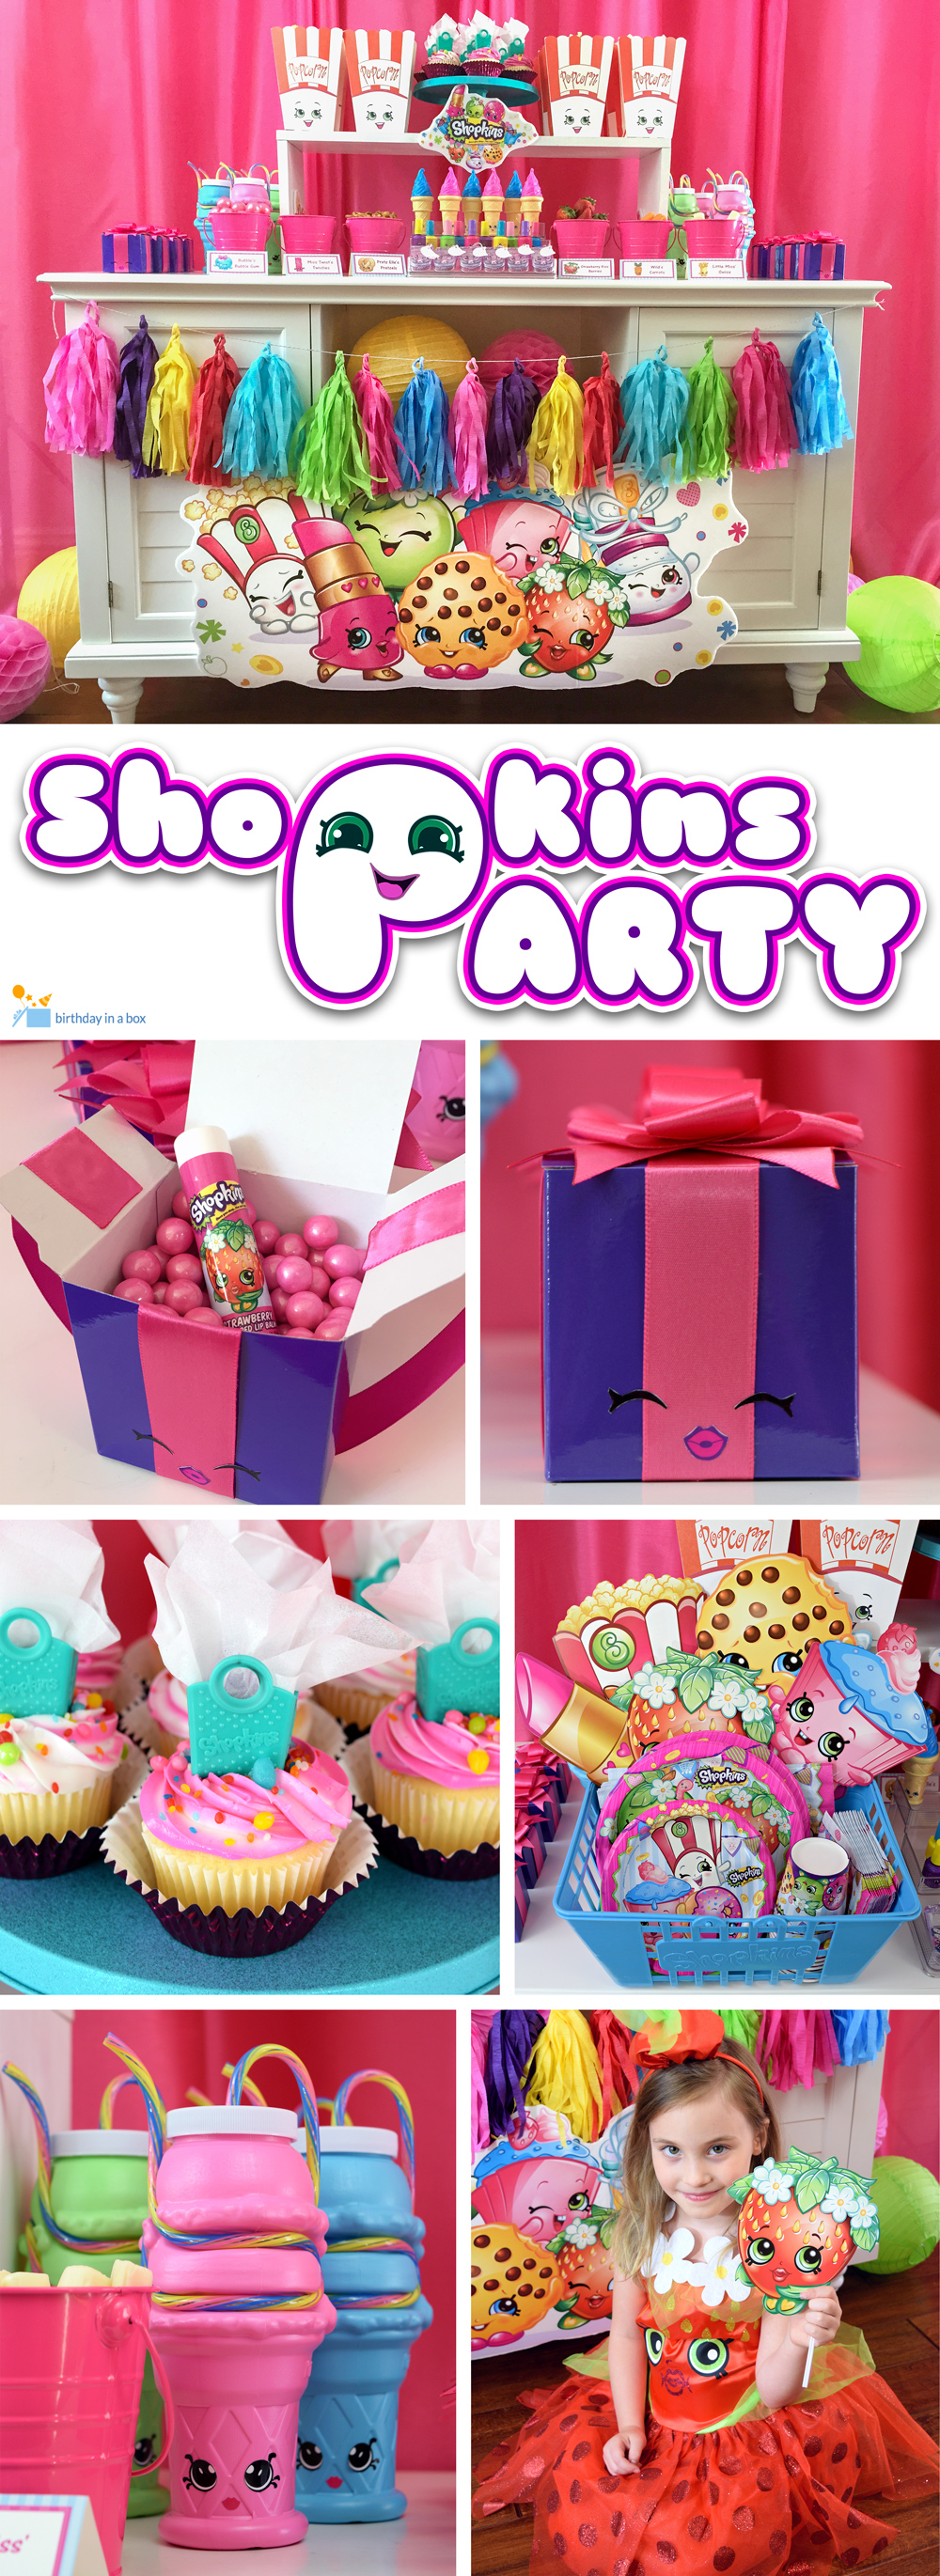 Shopkins Party For you Pinterest Board